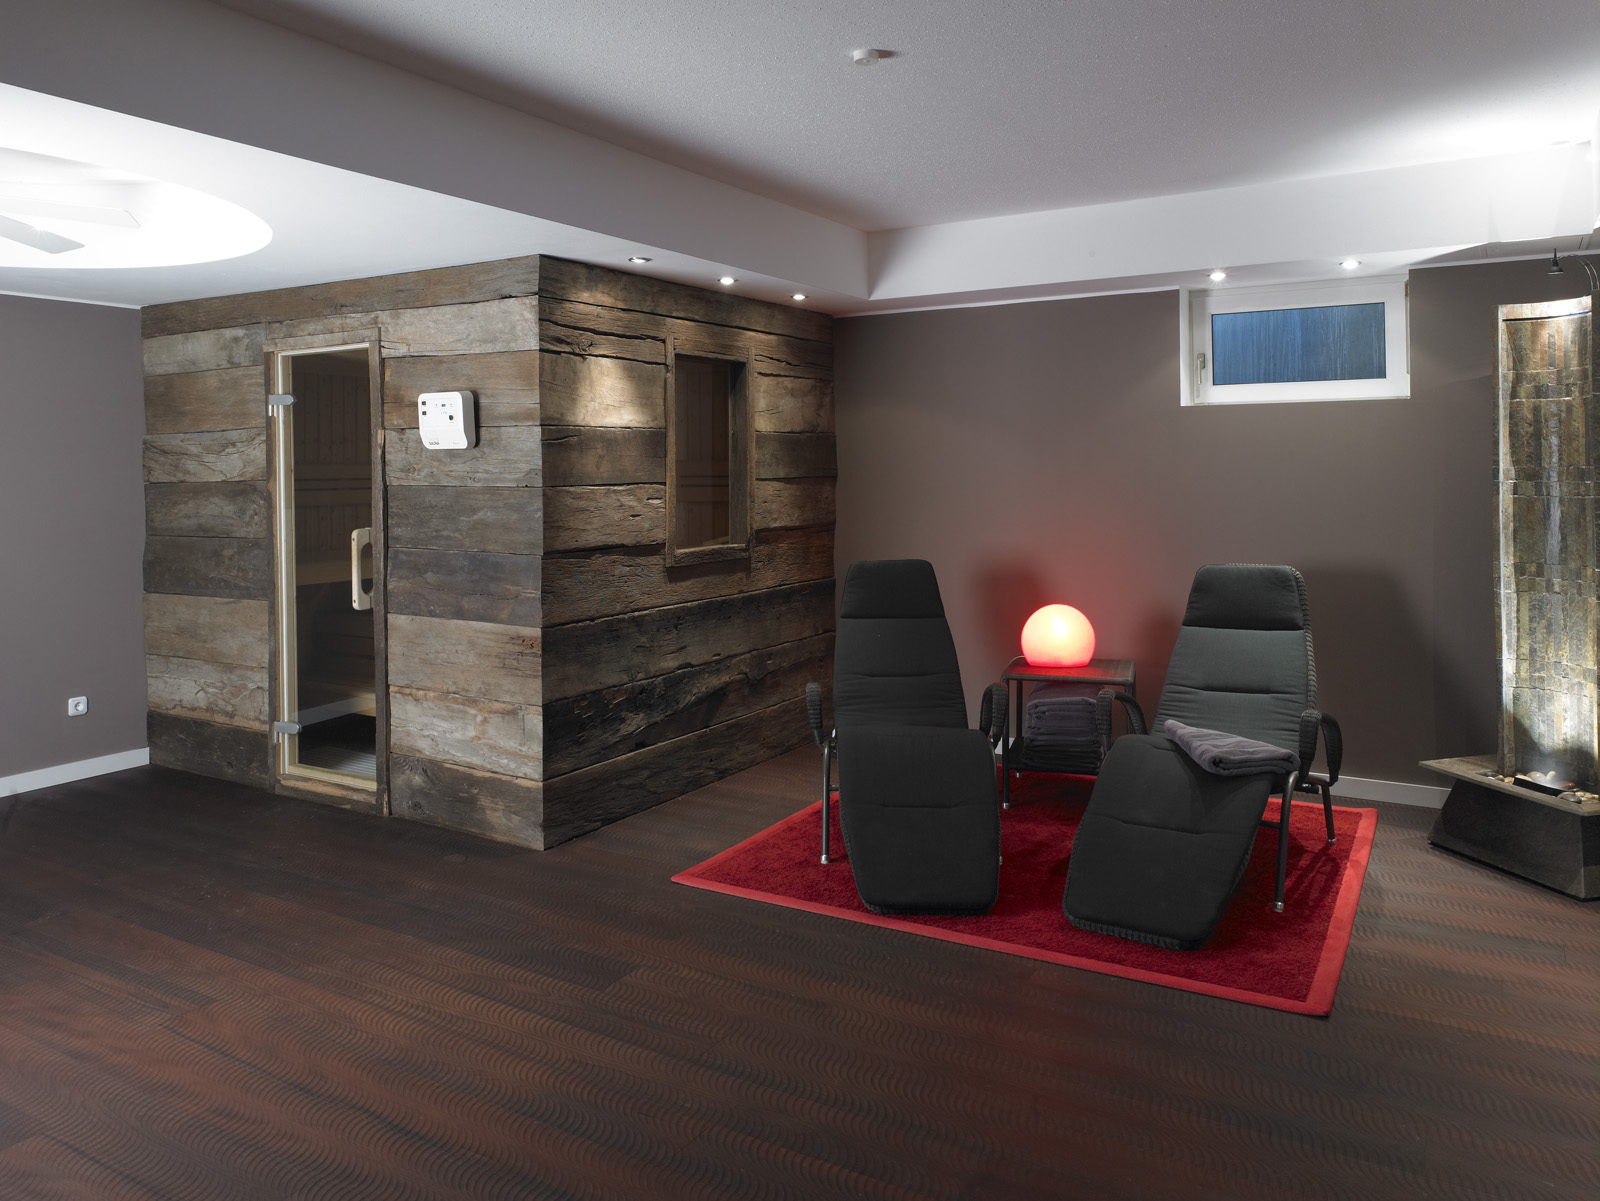 altholz bretter balken gehackt bs holzdesign. Black Bedroom Furniture Sets. Home Design Ideas